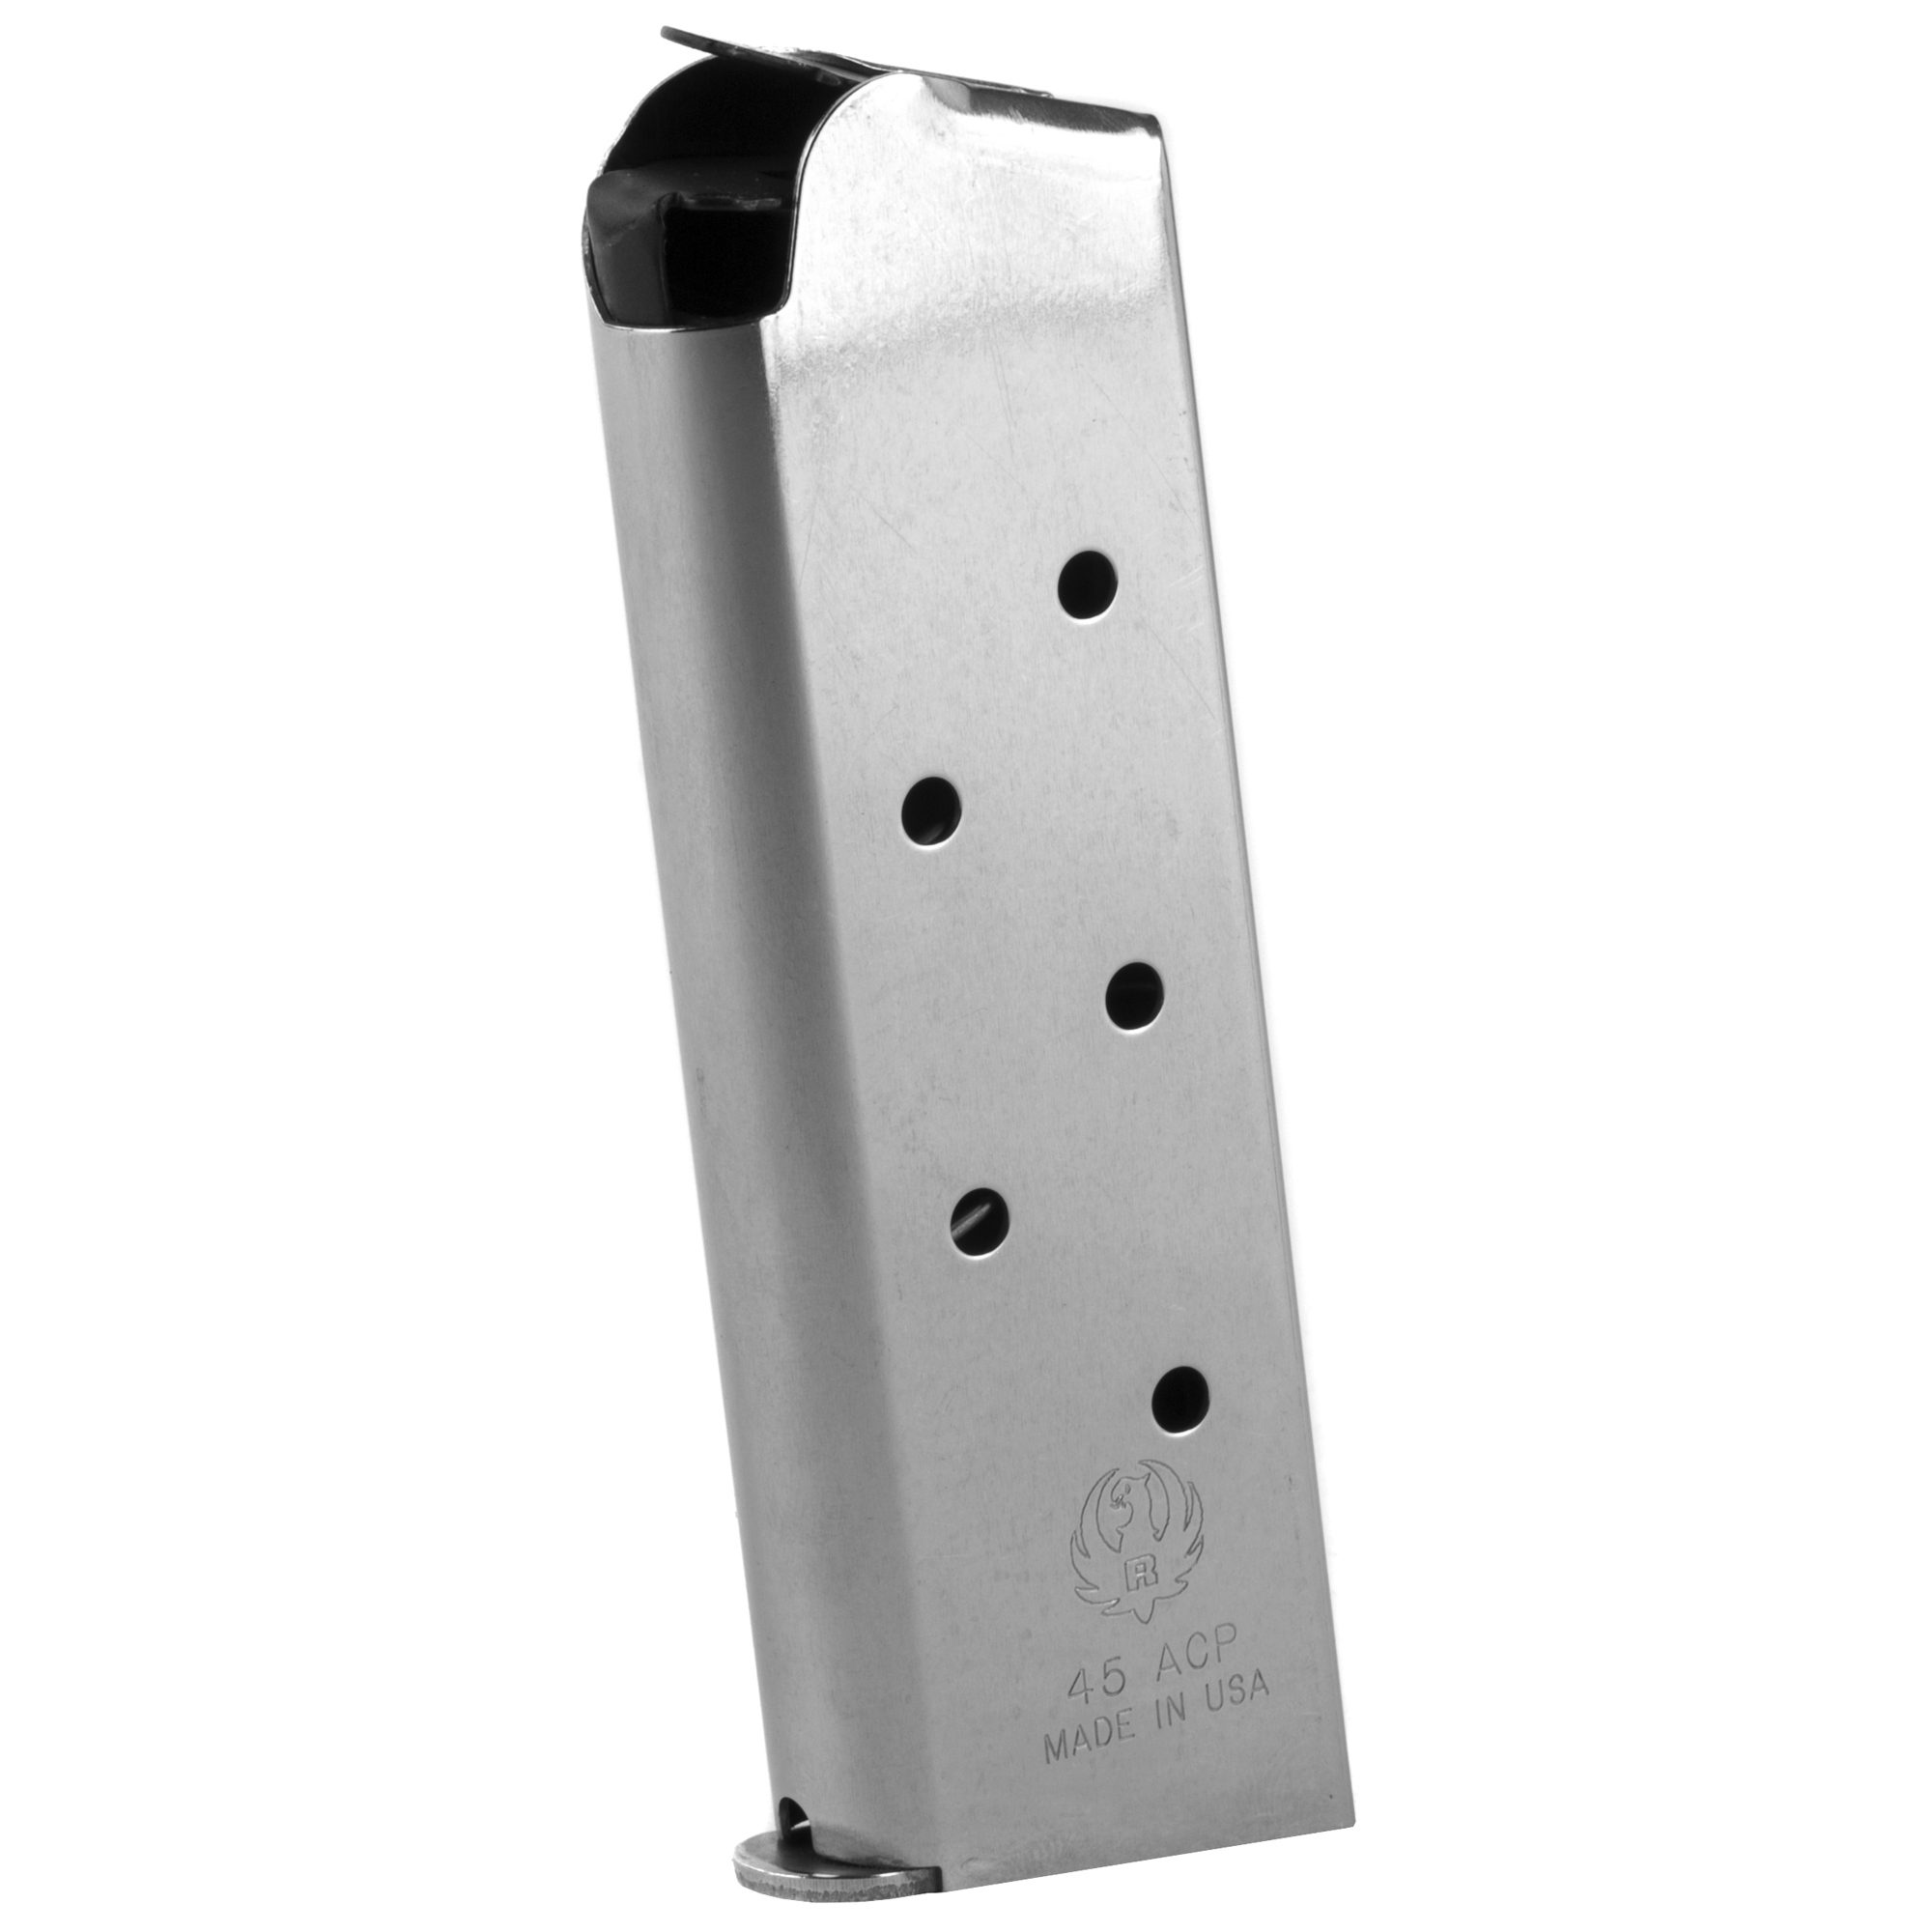 This Ruger factory magazine features high quality components and precise manufacturing that will ensure long-lasting performance and reliability.